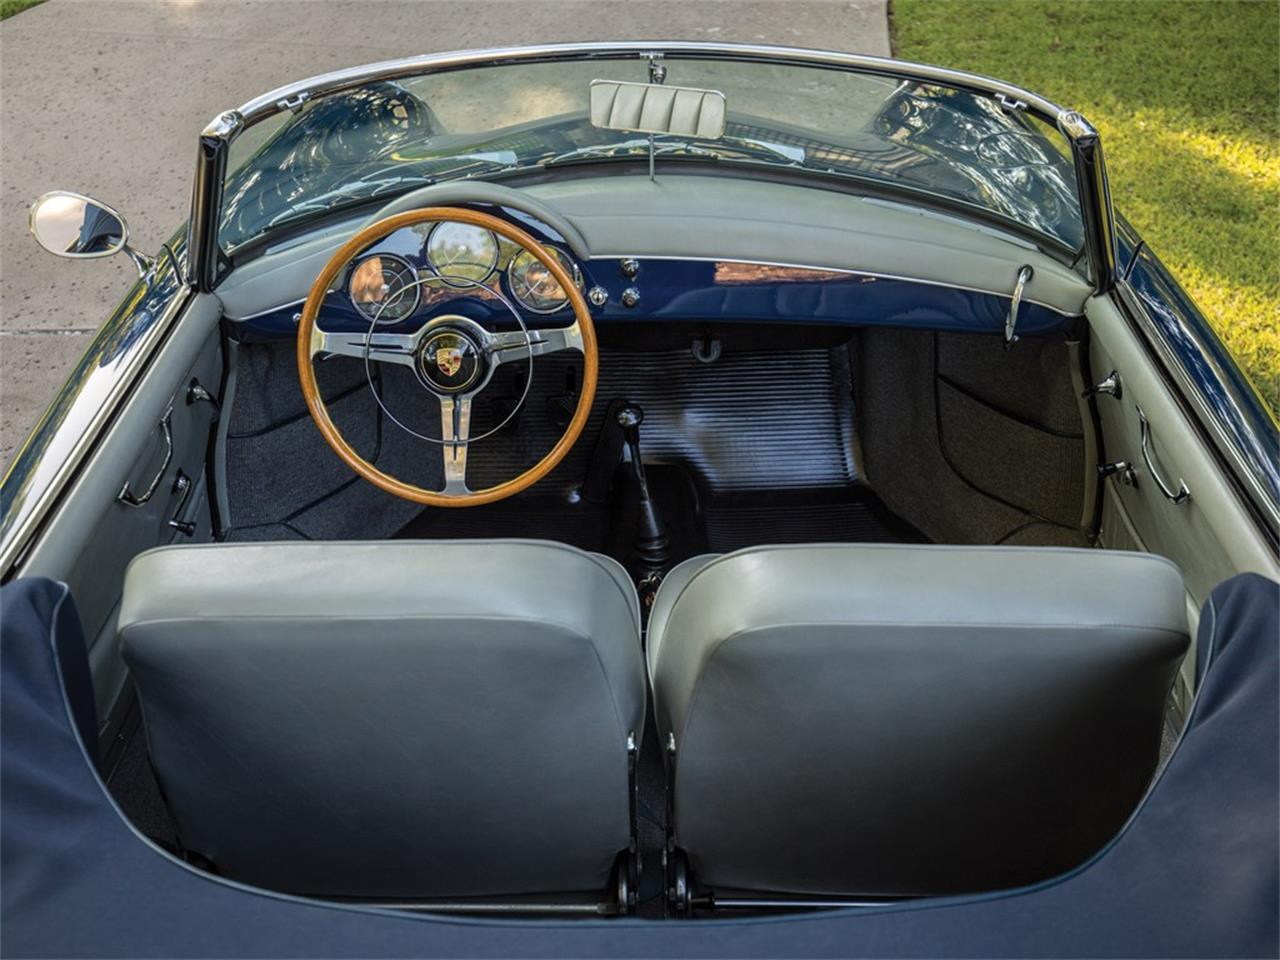 Large Picture of Classic 1962 Porsche 356B Auction Vehicle Offered by RM Sotheby's - Q4HA